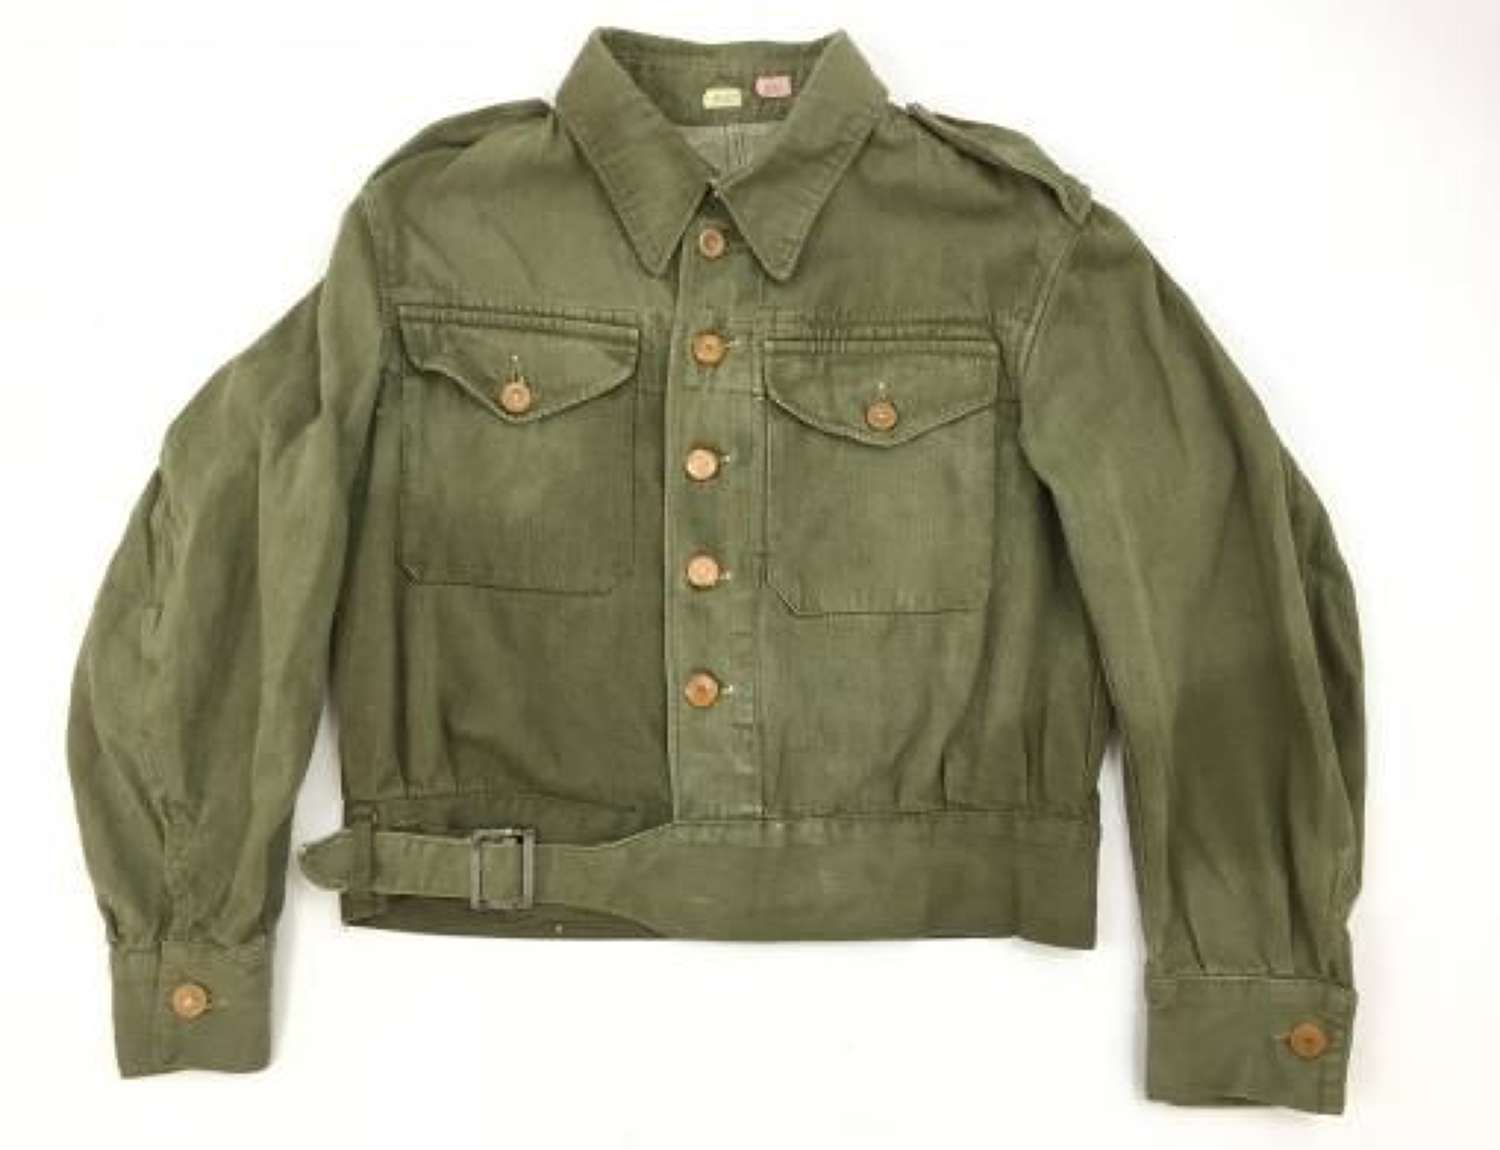 1955 Dated British Army Denim Battledress Blouse - Size 4